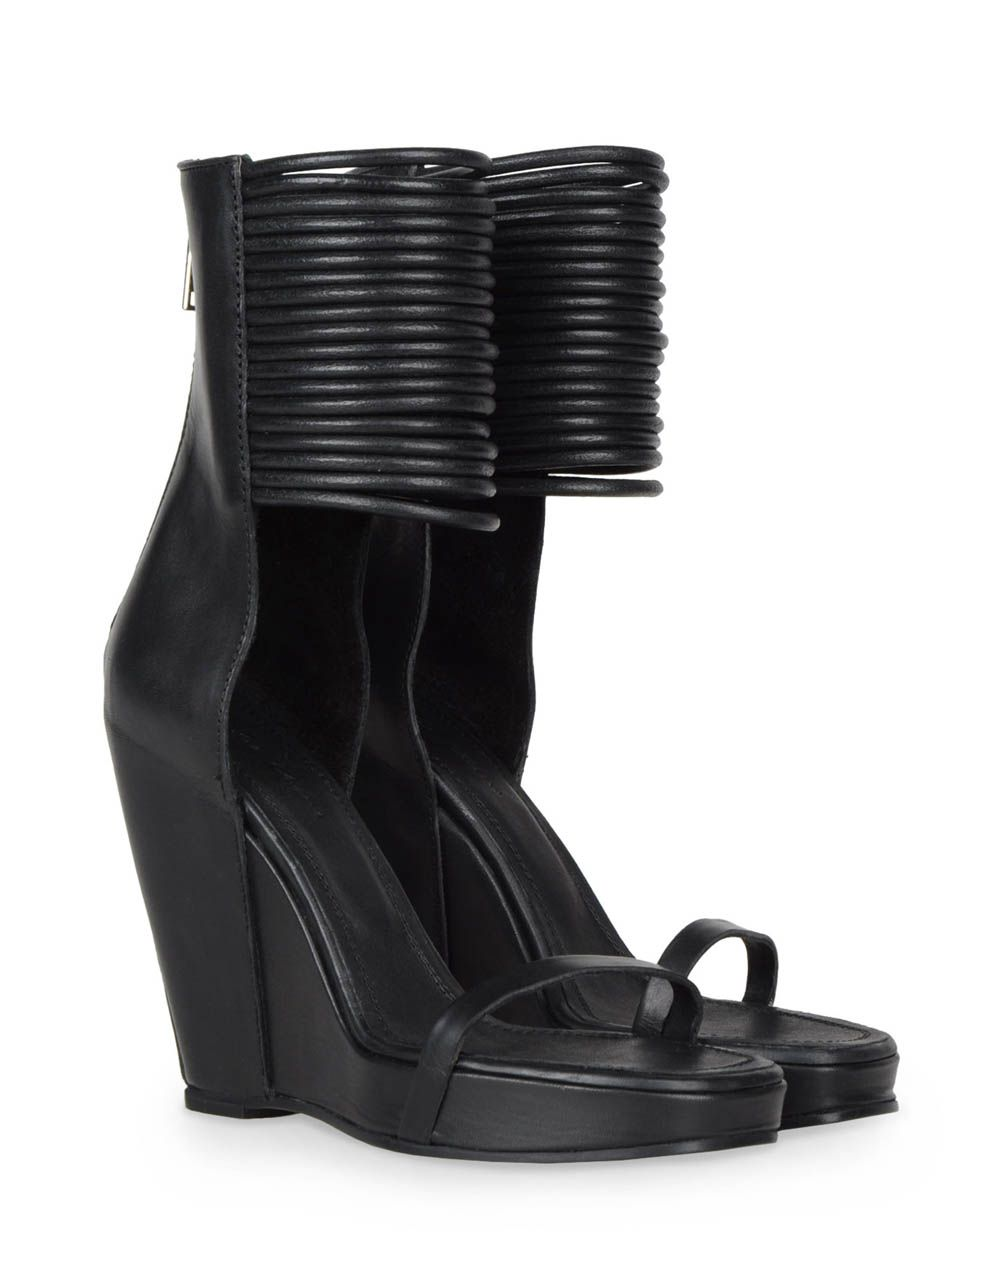 Leather SLIVER Wedges boots Spring/summerRick Owens QKWj1